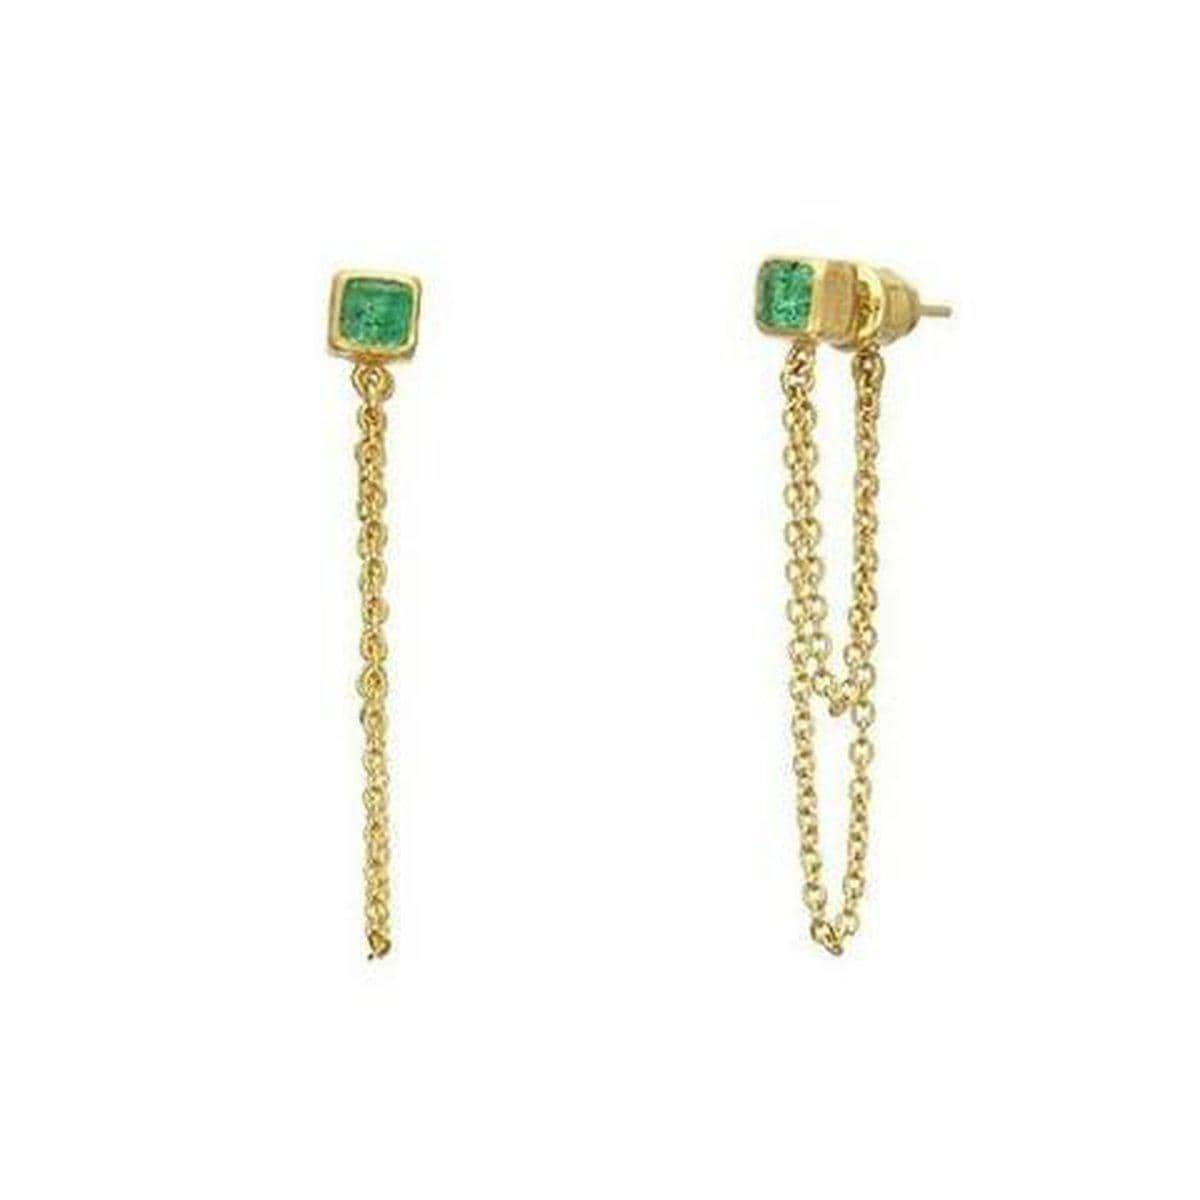 Rainbow 24K Gold Emerald Earrings - E-LE-1CEM-2CH-L-PL